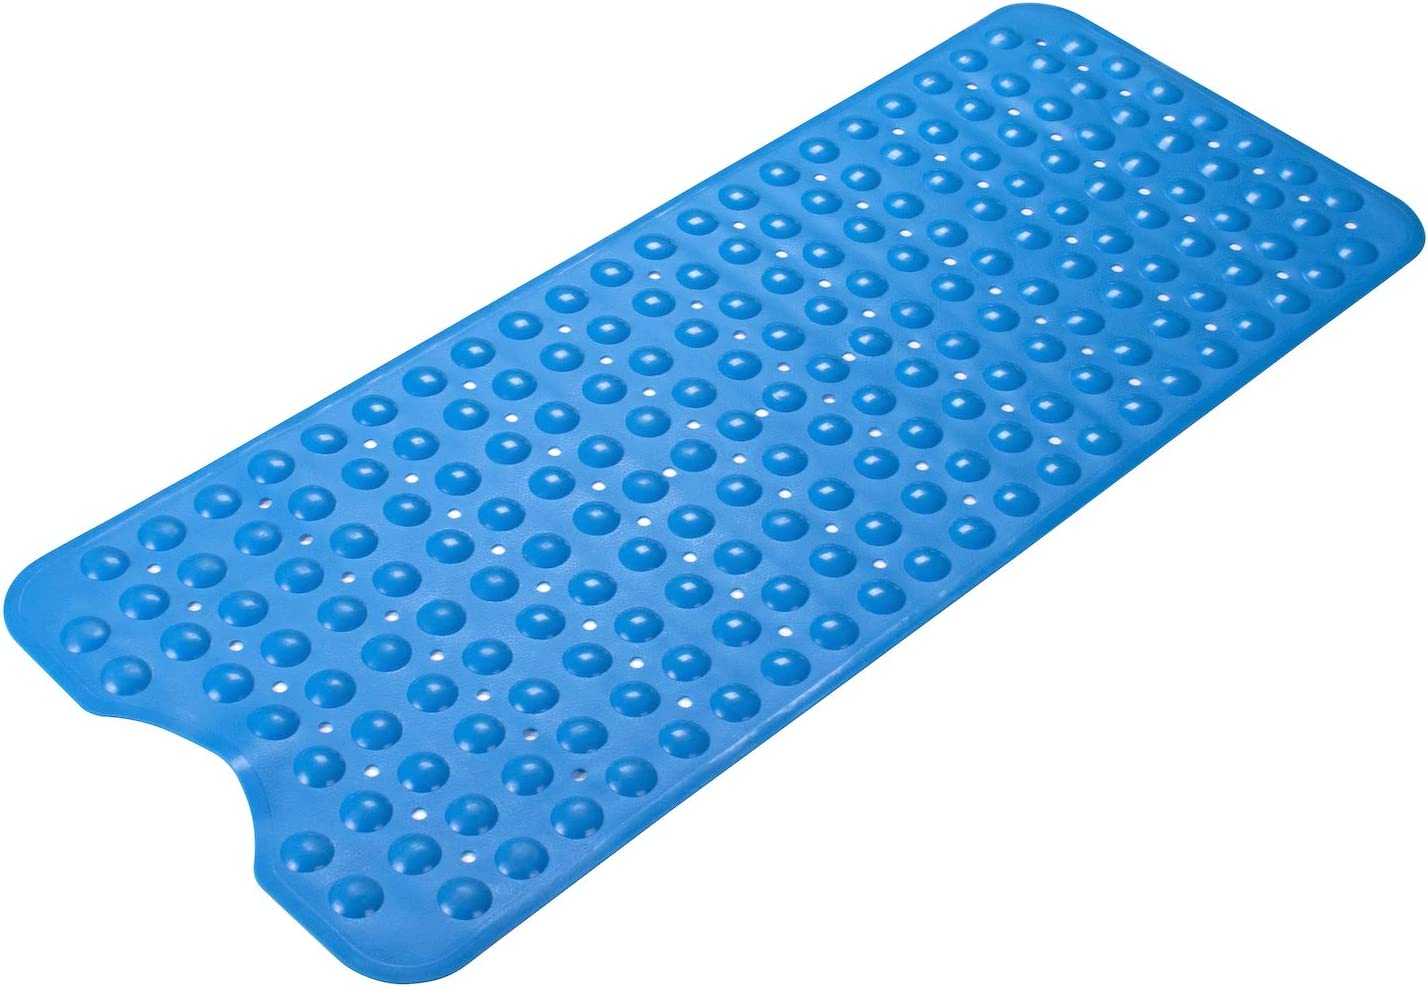 Special price for a Max 79% OFF limited time AmazerBath Bath Tub Mat Larger Mats with Suction Cups Stro